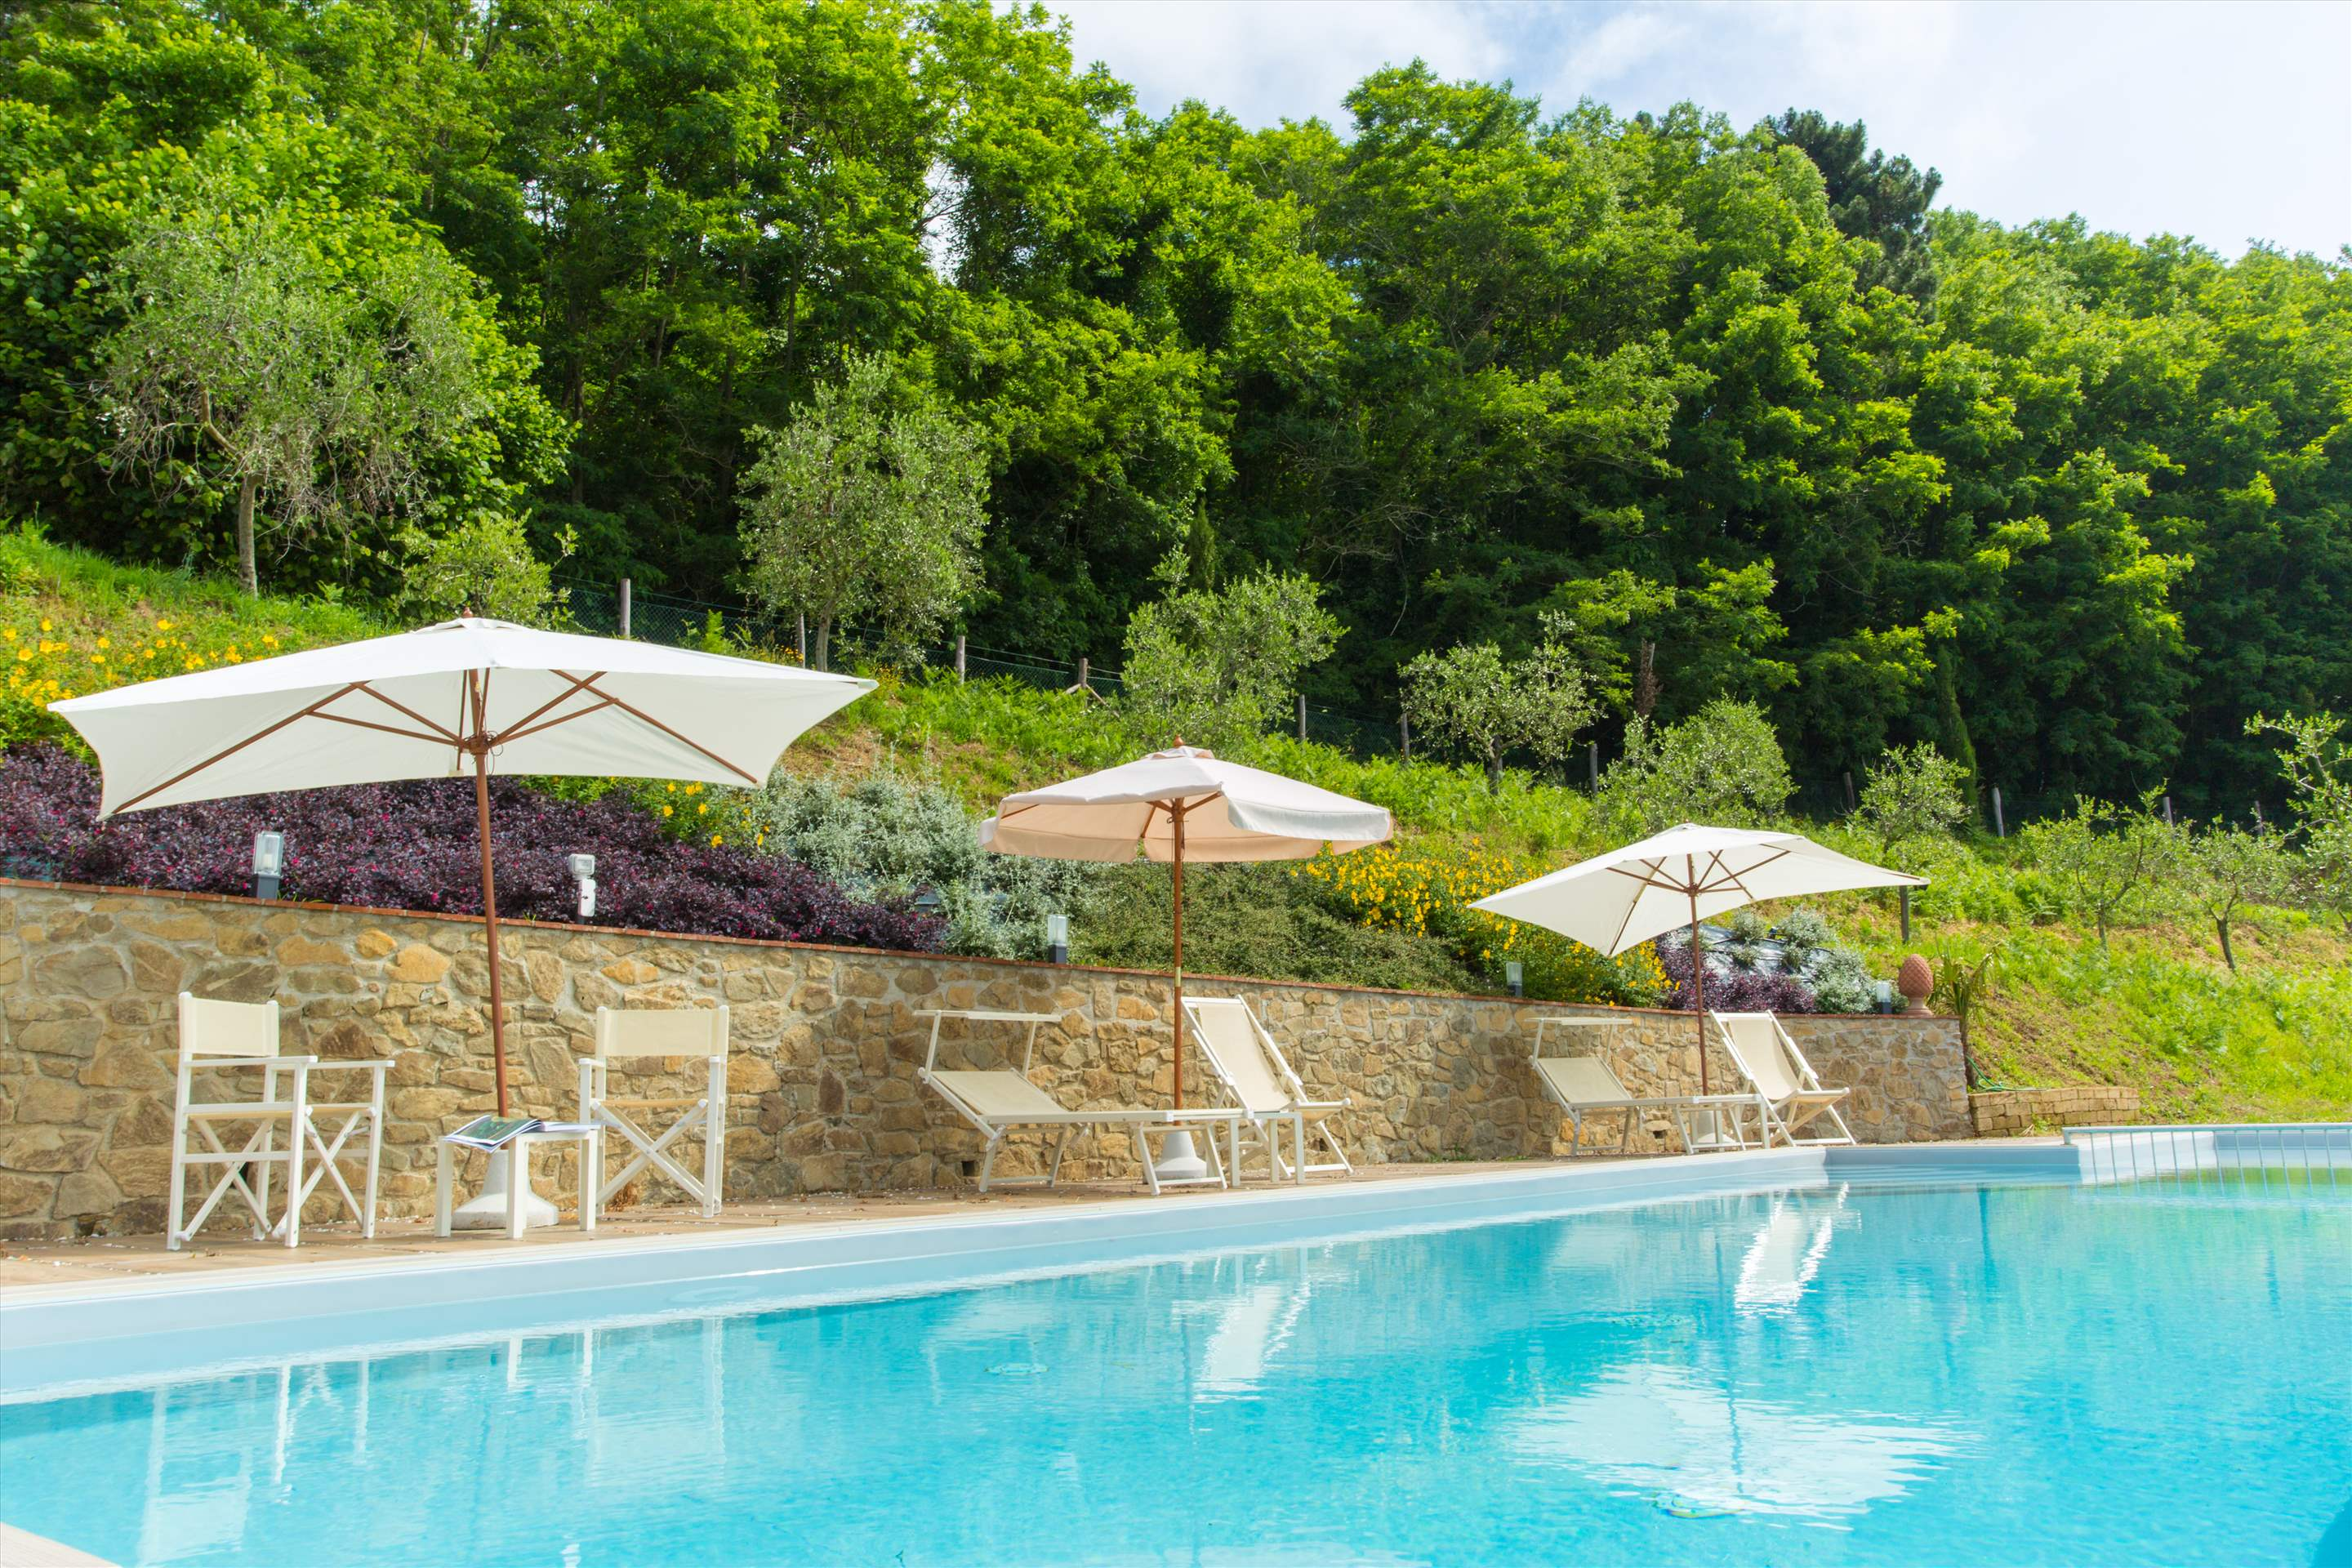 Villa Panorama, 3 bedroom villa in North Tuscany - Pisa & Lucca Area, Tuscany Photo #11